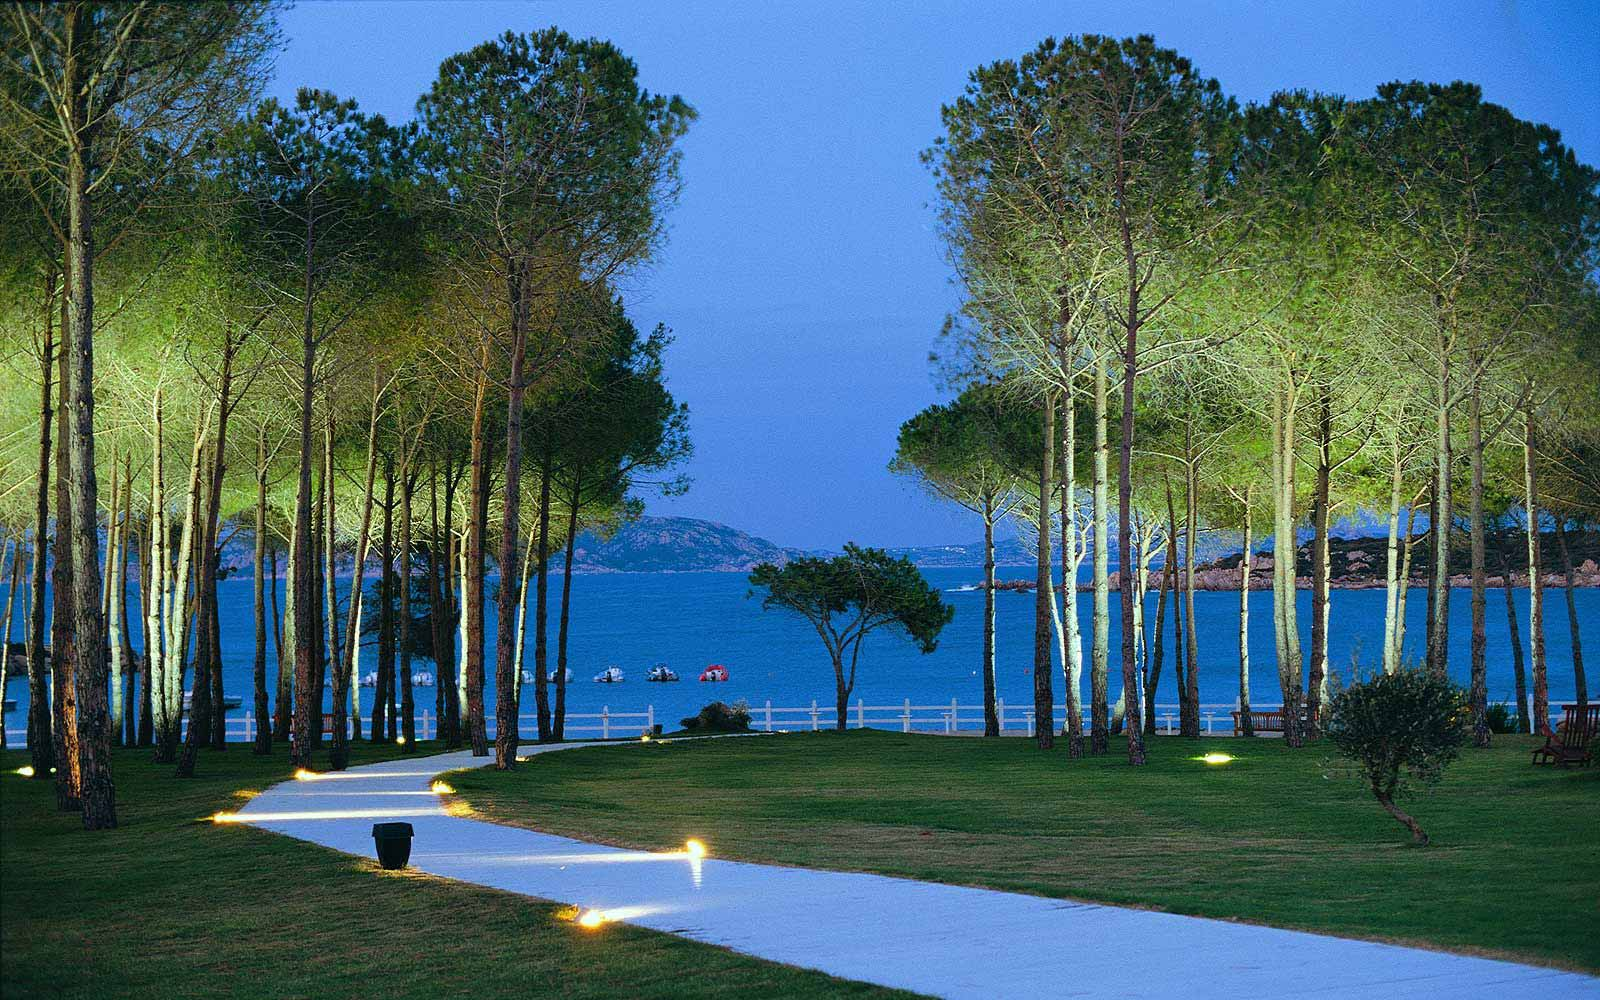 La Coluccia Hotel & Beach Club's pathway to the beach at night